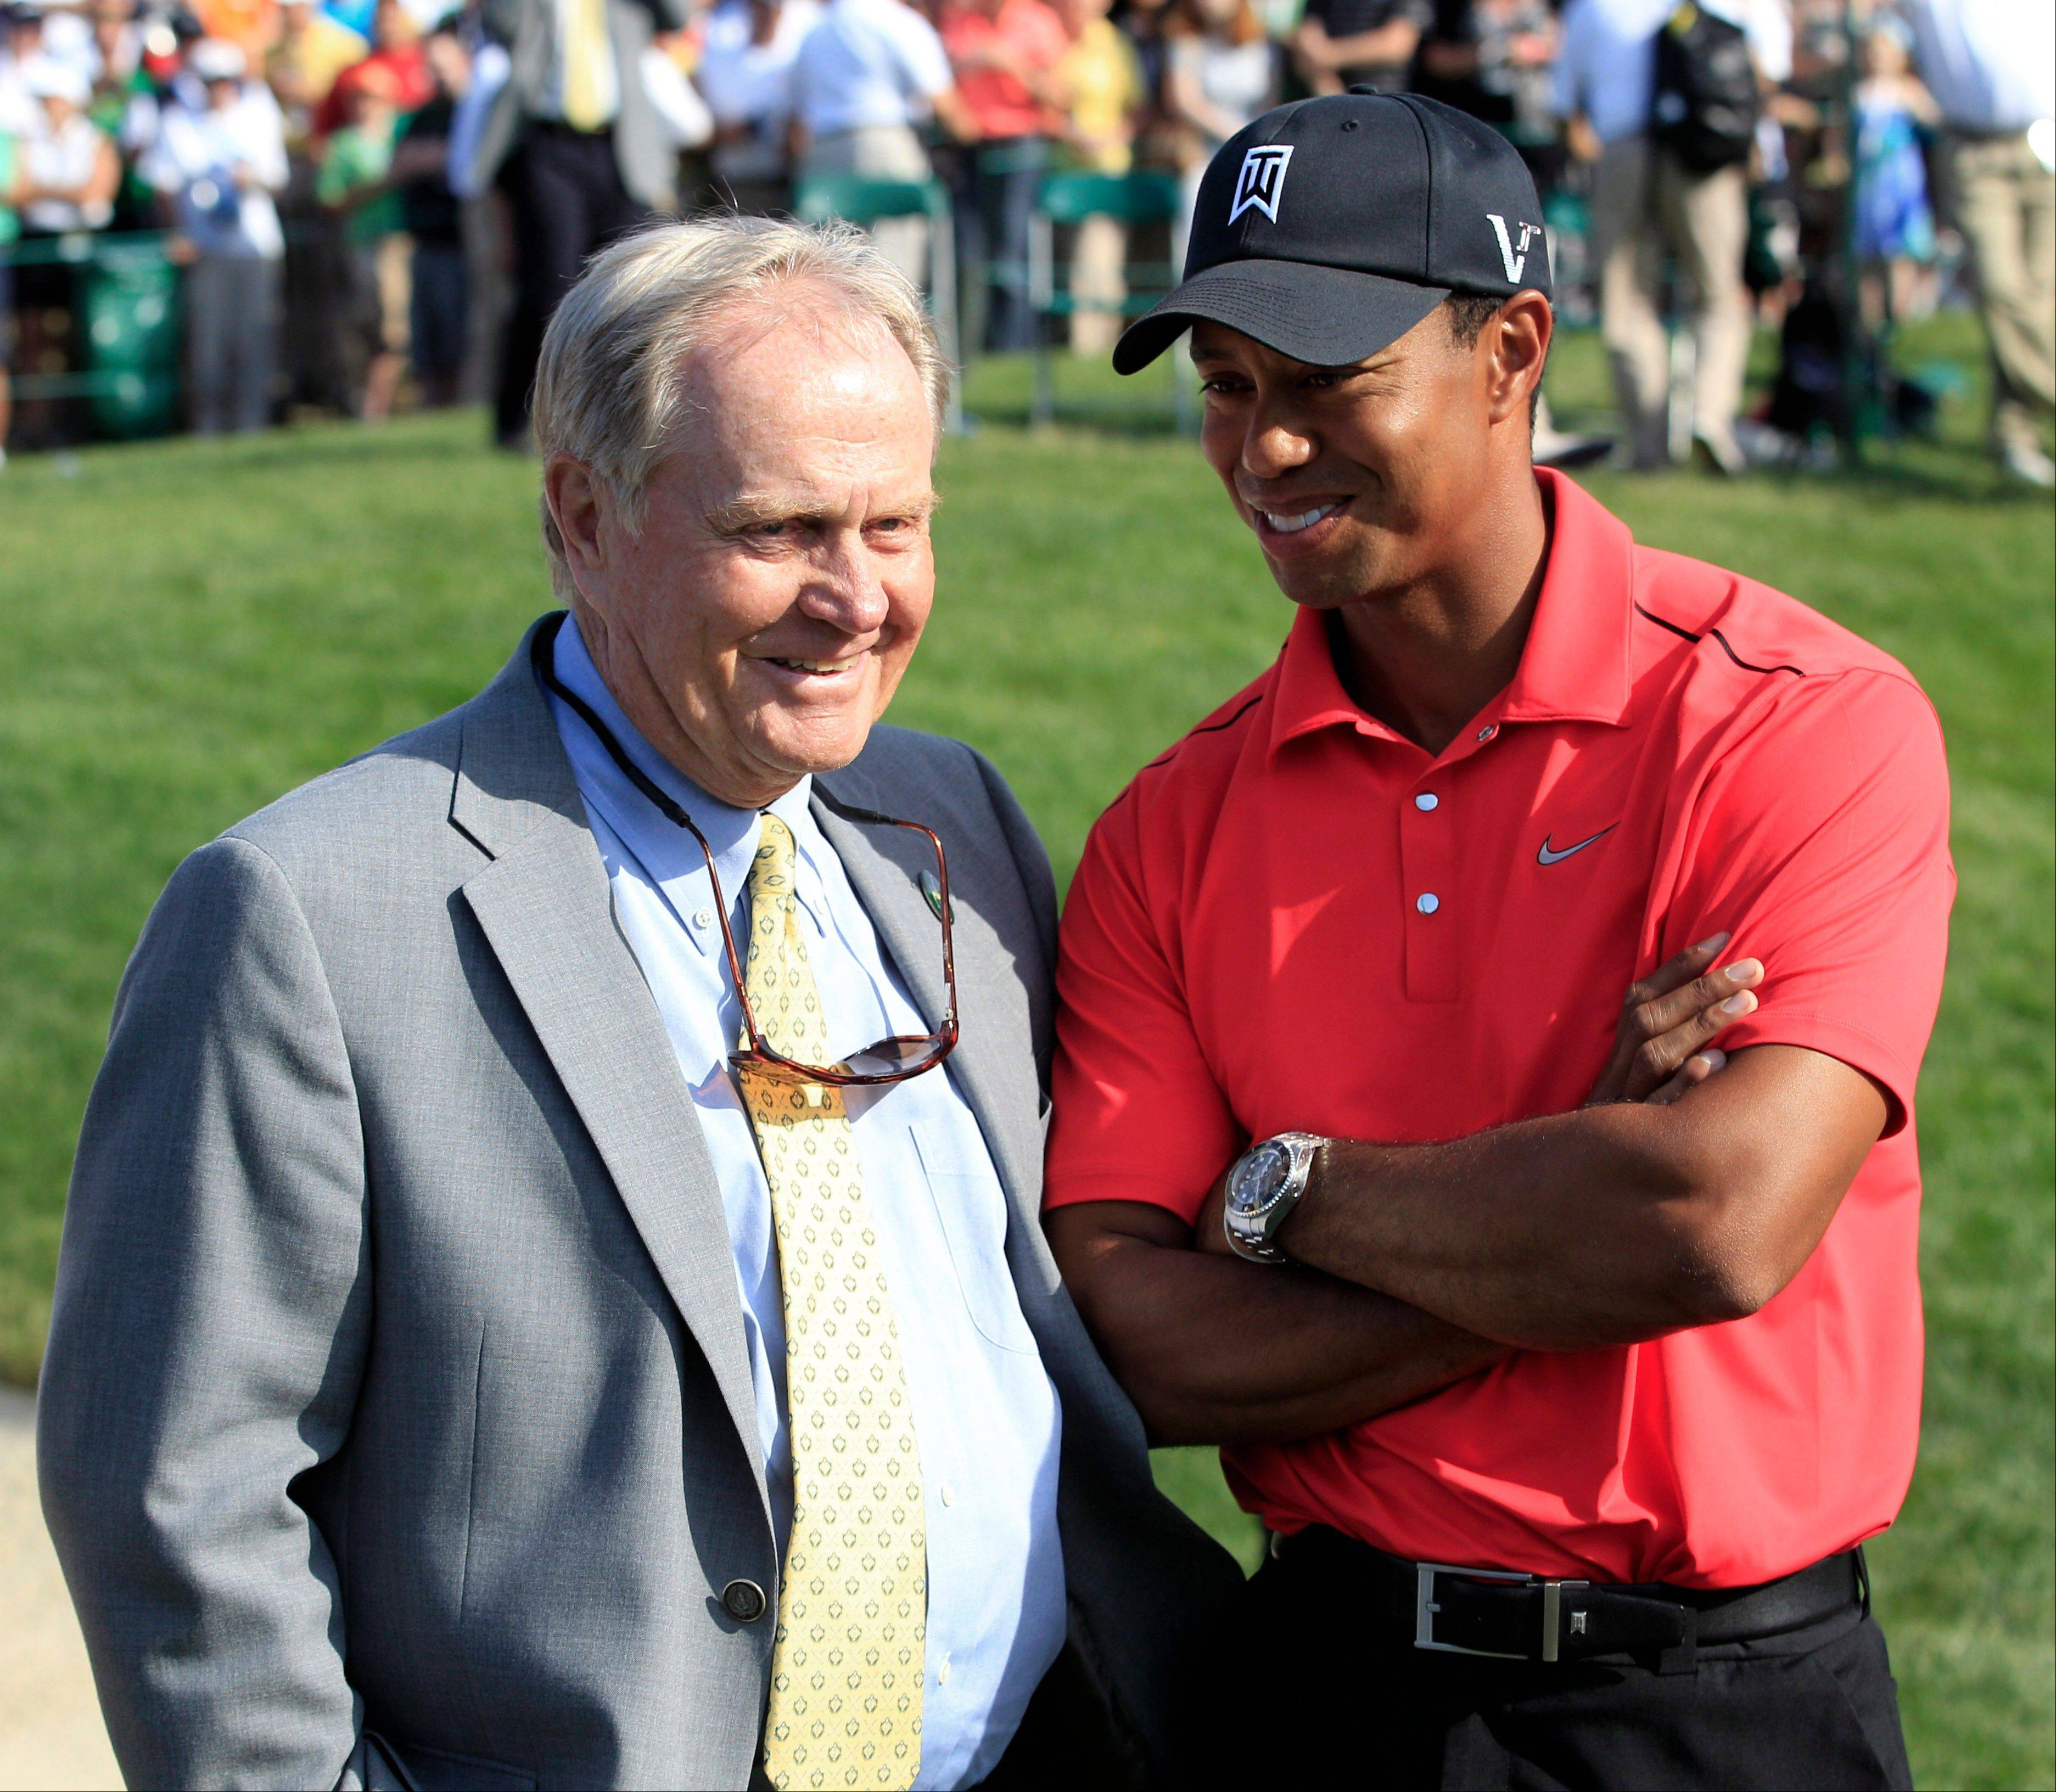 Four years ago, with a major championship lineup of courses that favored Tiger Woods, golf legend Jack Nicklaus said it would be a �big year� for Woods if he was going to break Nicklaus� record. The same might be true for 2014, but Woods� age (38) might be as important as where the majors are played.